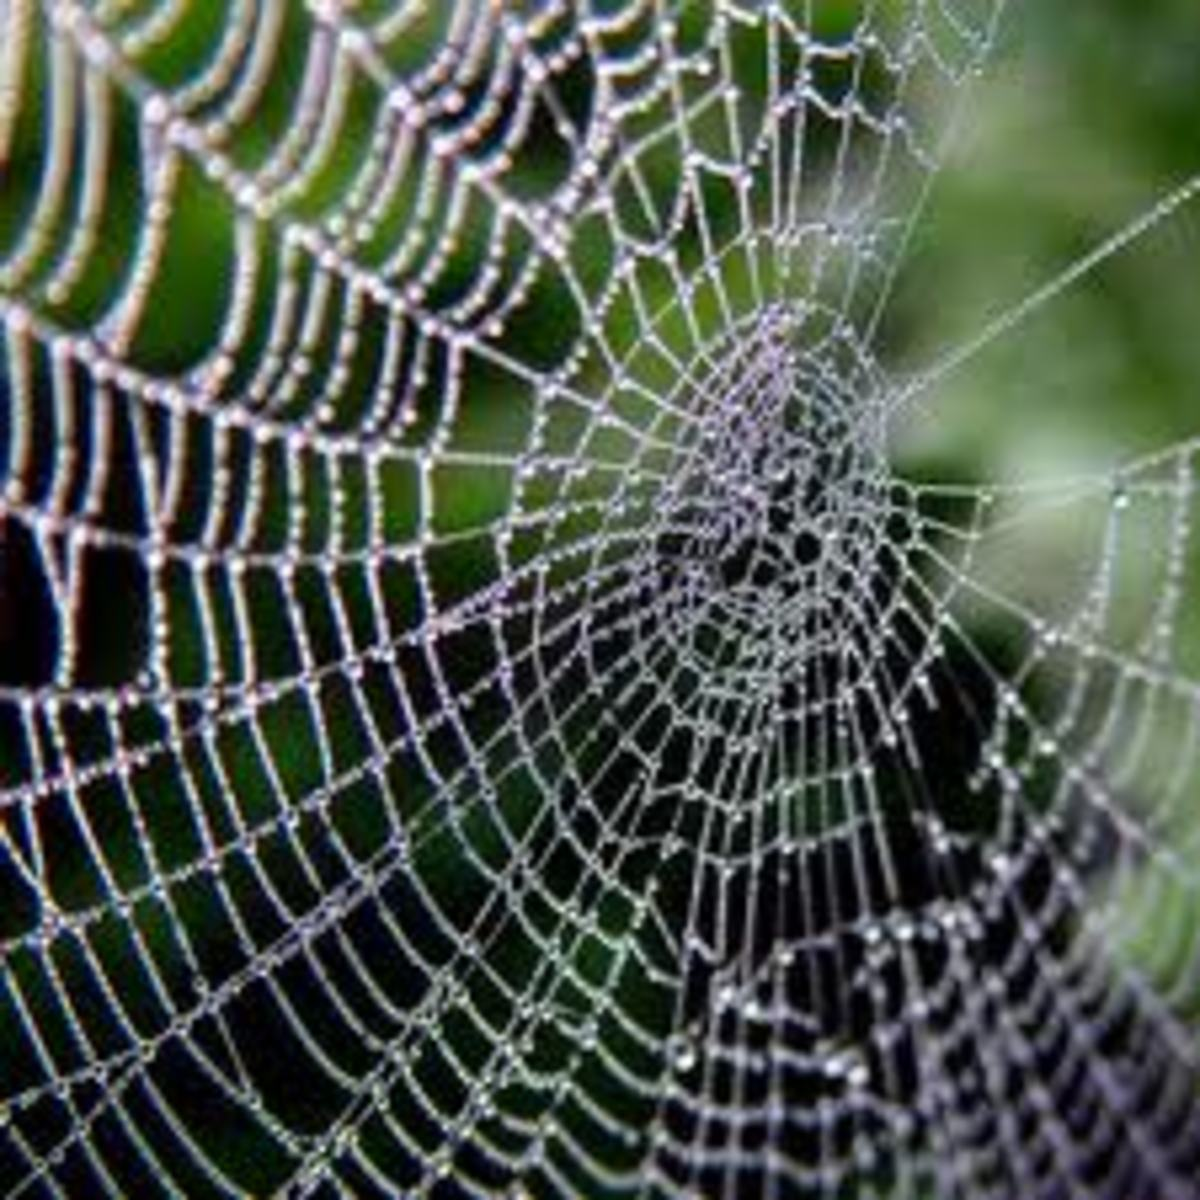 Spider dreams usually represent our own feelings and insecurities in our waking life. Spider dream meanings can vary, both good and bad.